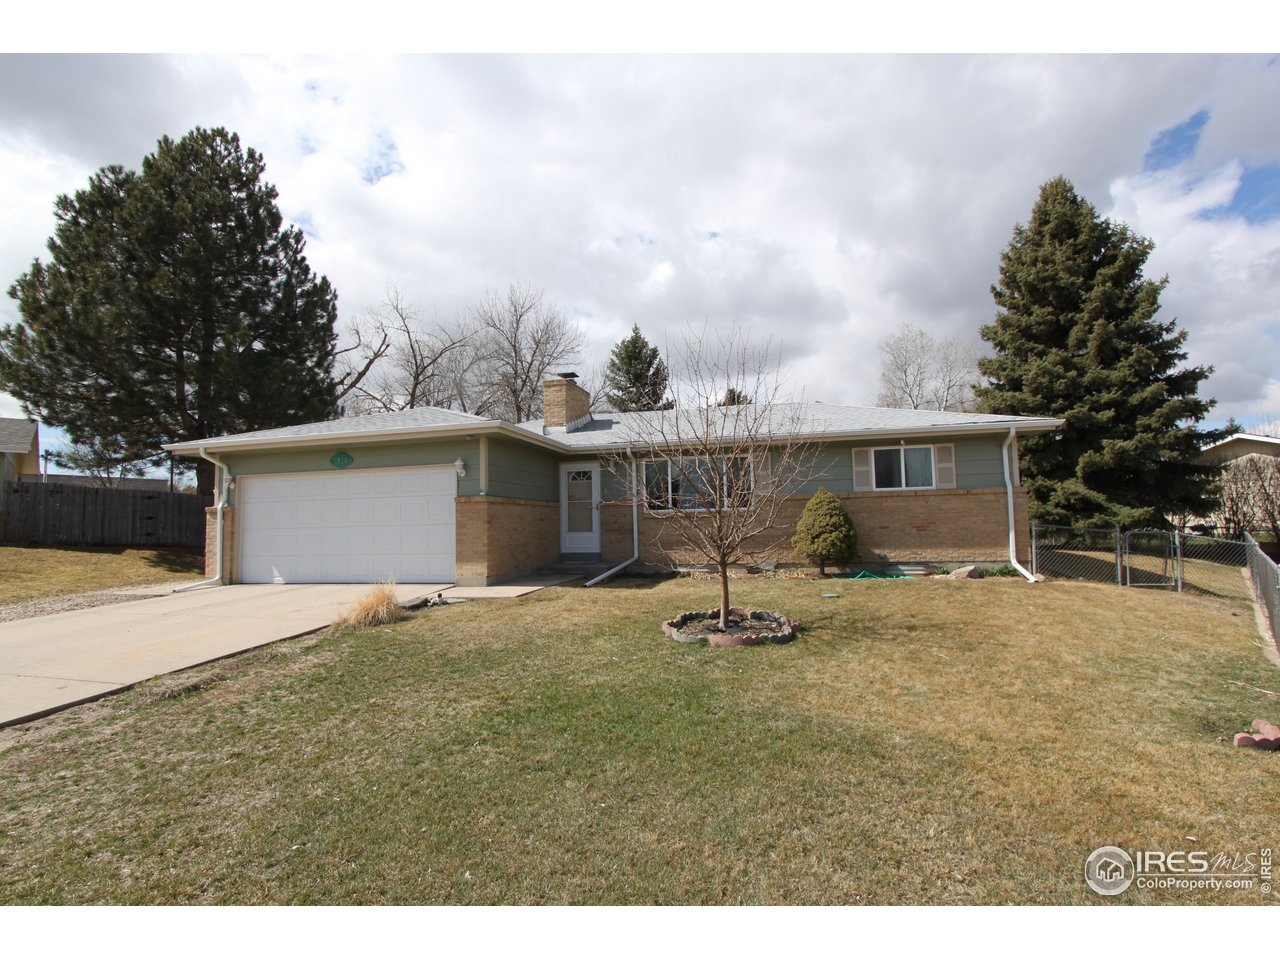 3832 W 8TH ST, GREELEY, CO 80634